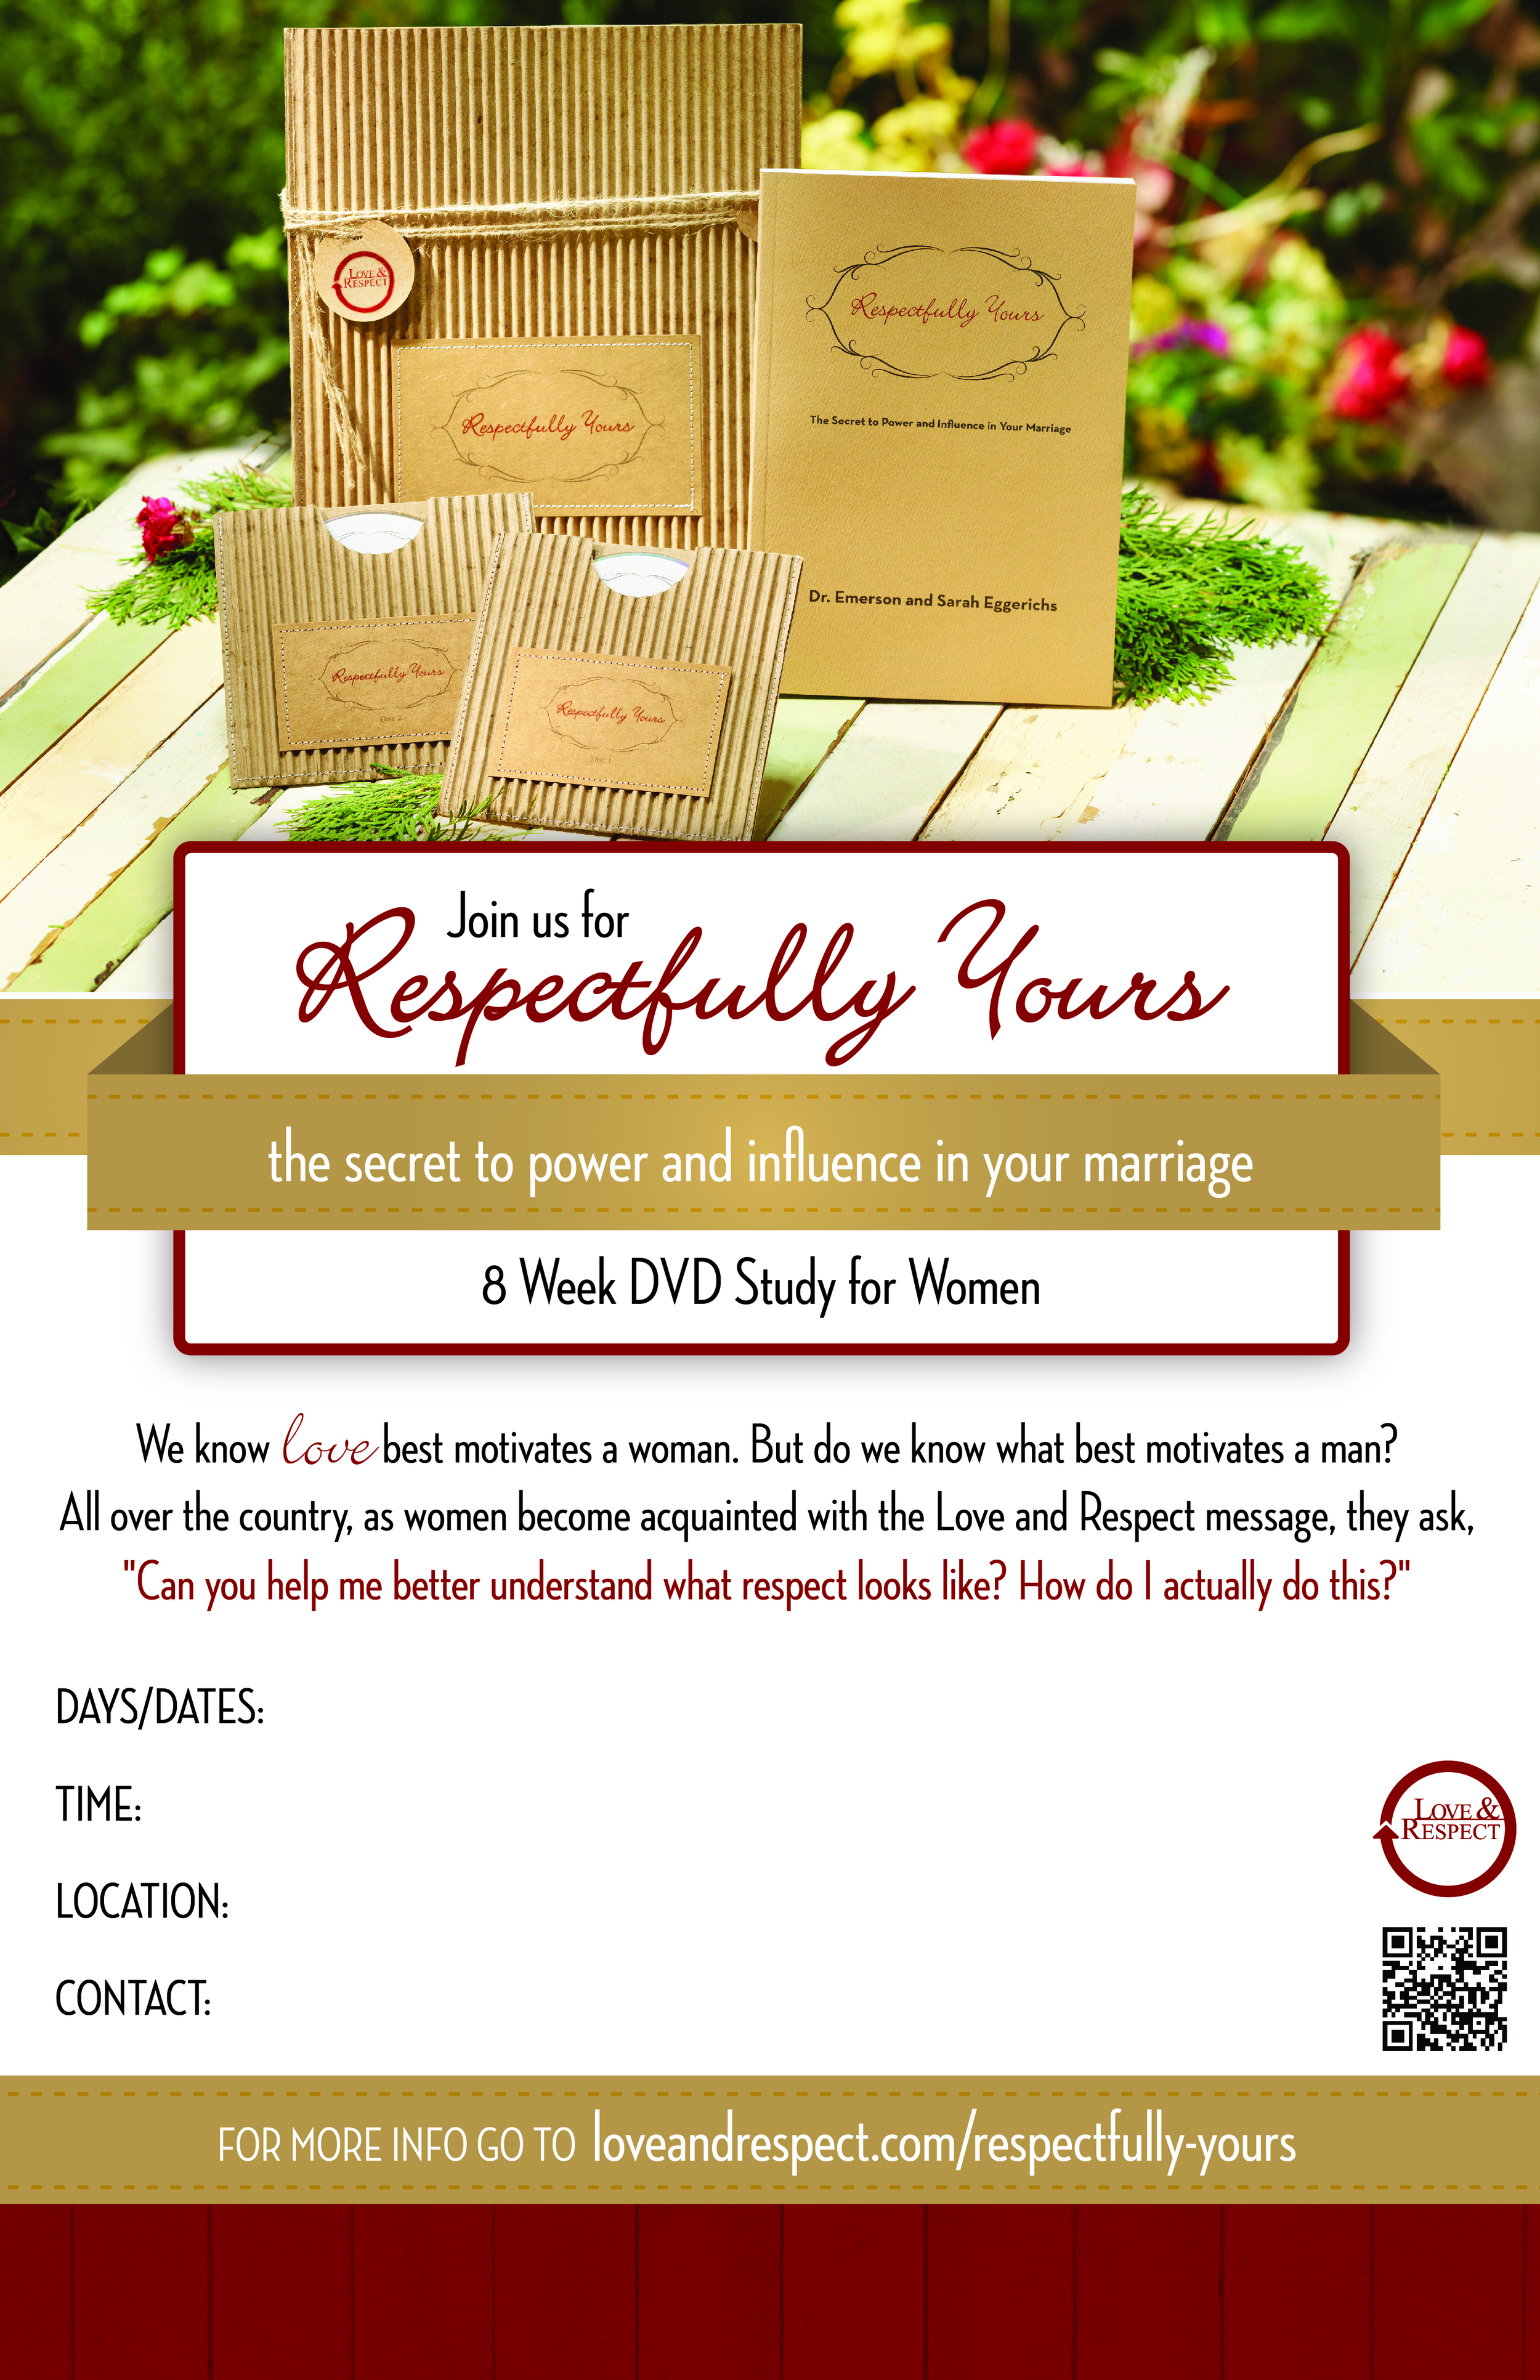 respectfully-yours-sign-11x17.jpg